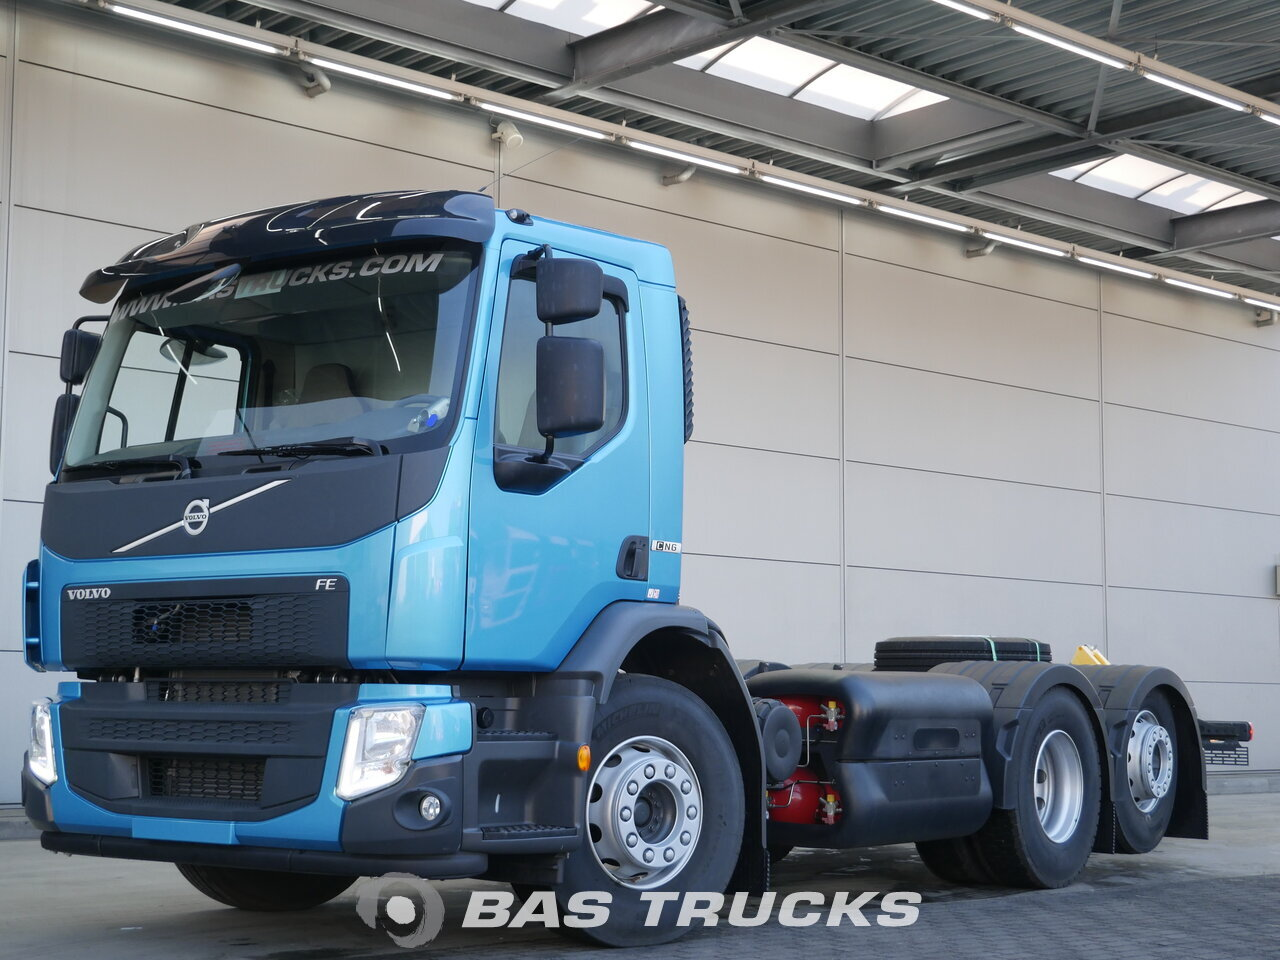 For sale at BAS Trucks: Volvo FE 320 6X2 New